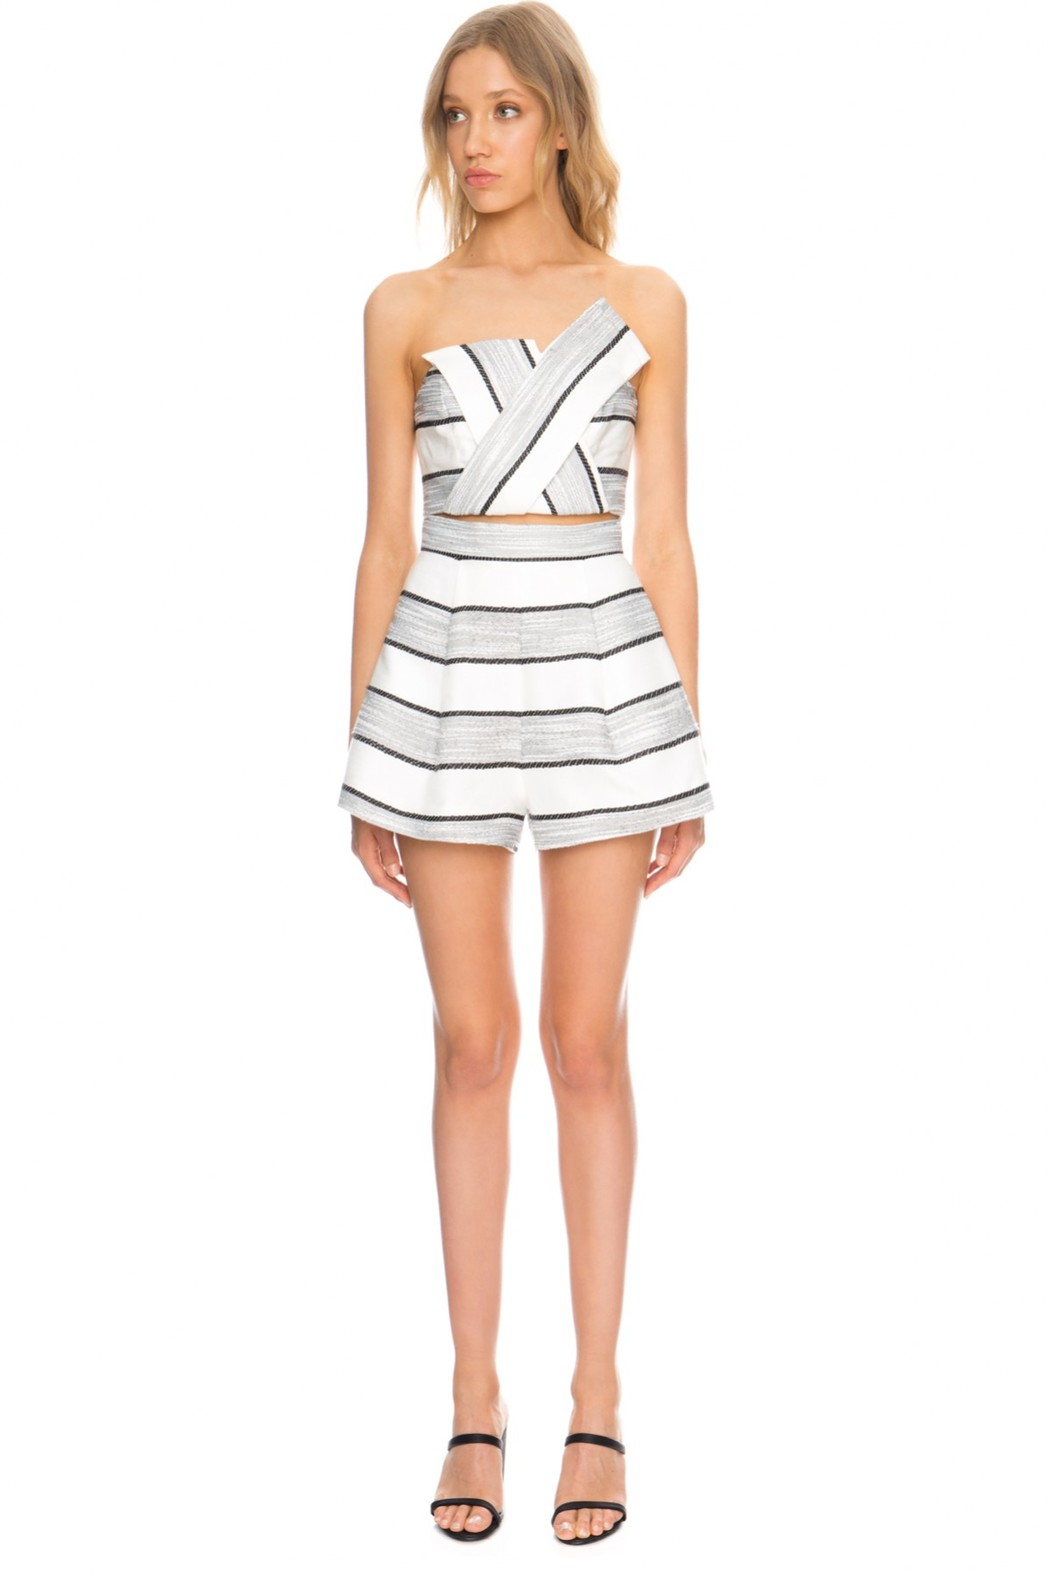 Finders keepers dress white and black